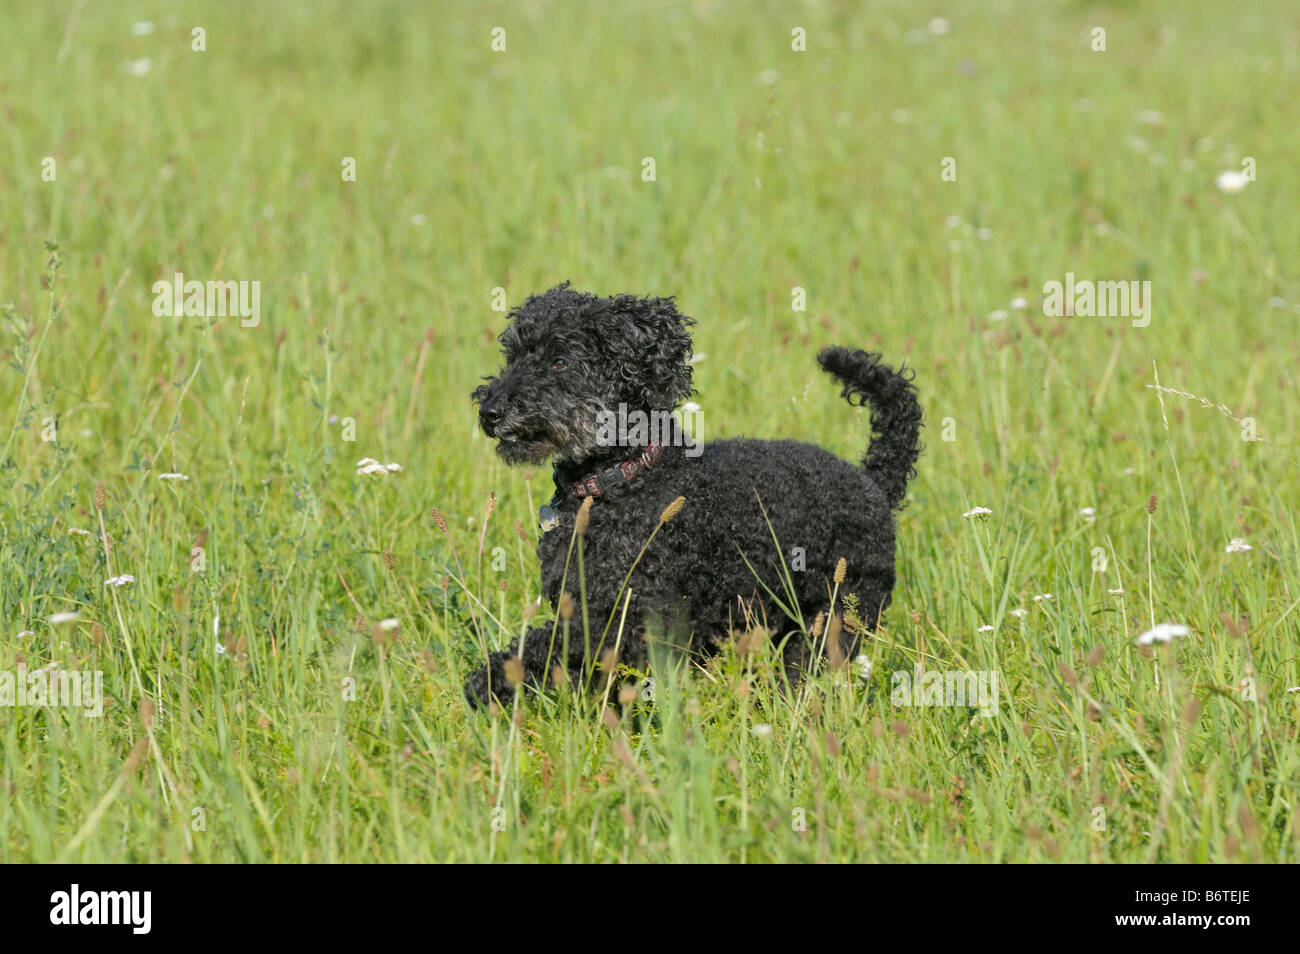 Black poodle running in a meadow - Stock Image